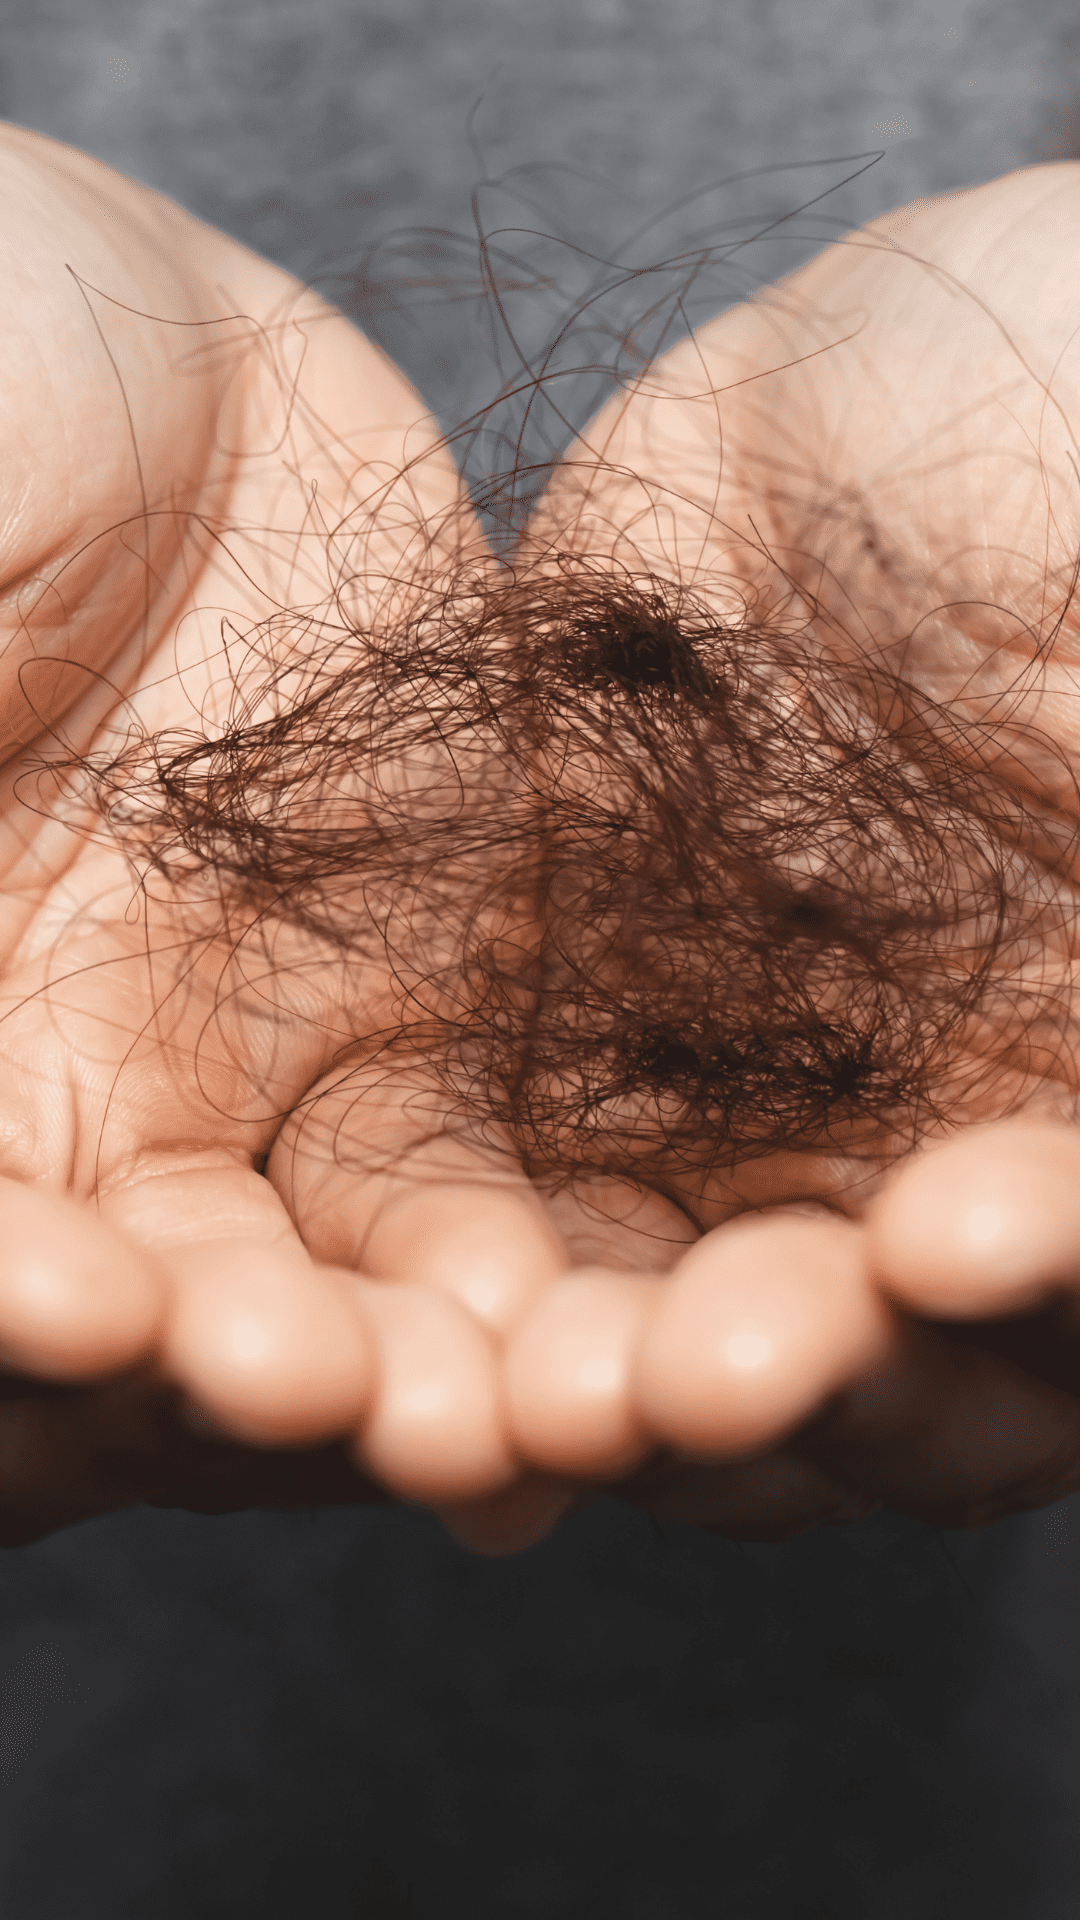 The increase in hair shedding and loss as a result of anti depressant drugs